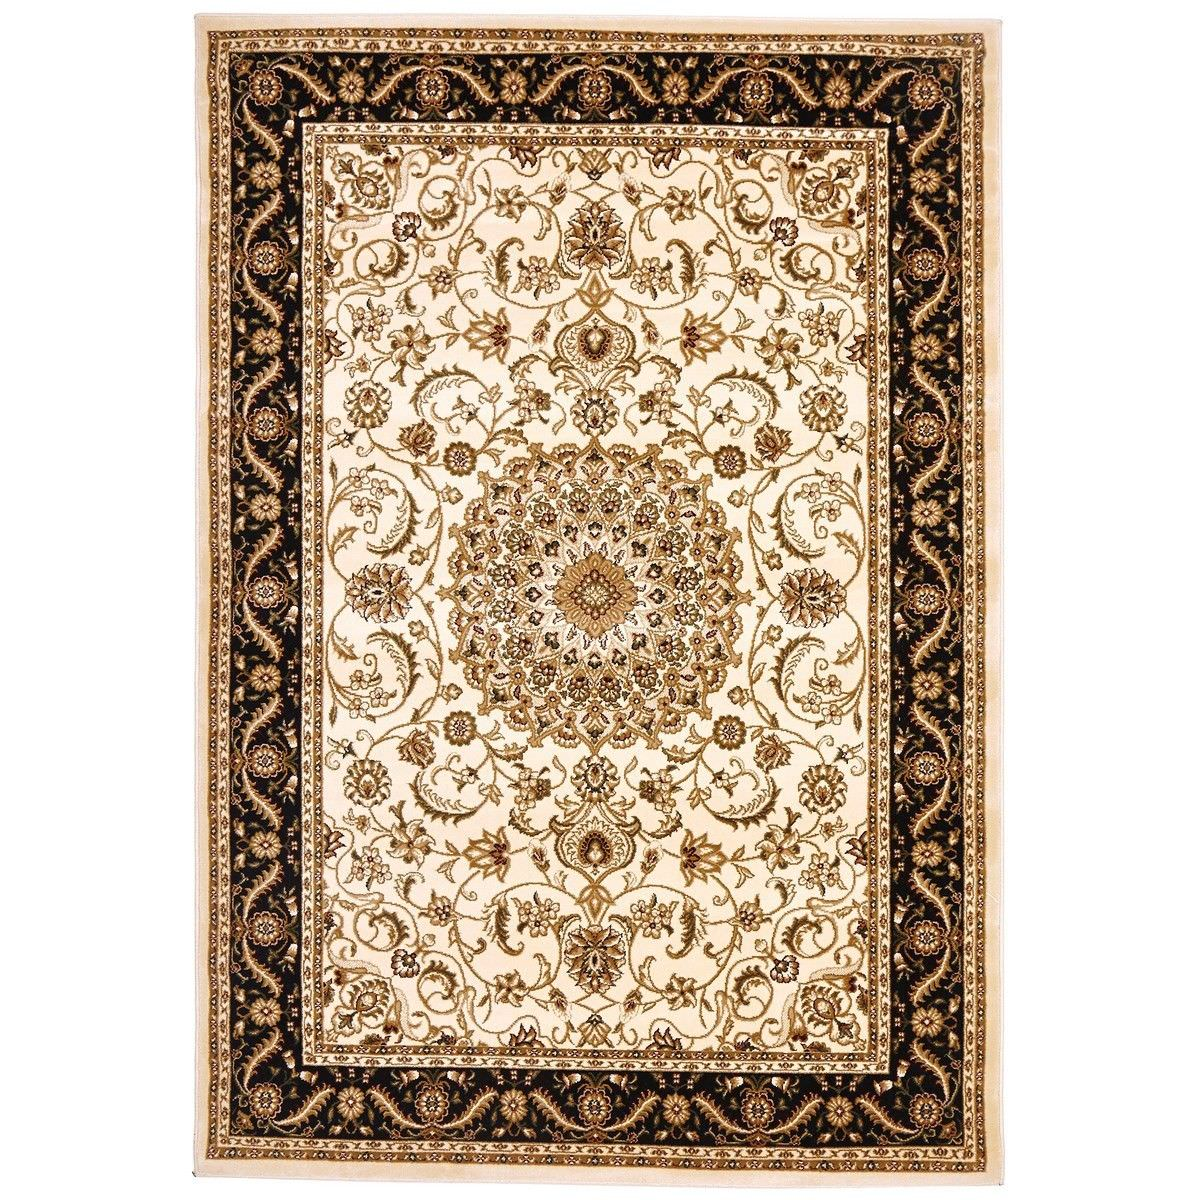 Sydney Medallion Turkish Made Oriental Rug, 150x80cm, Ivory / Black